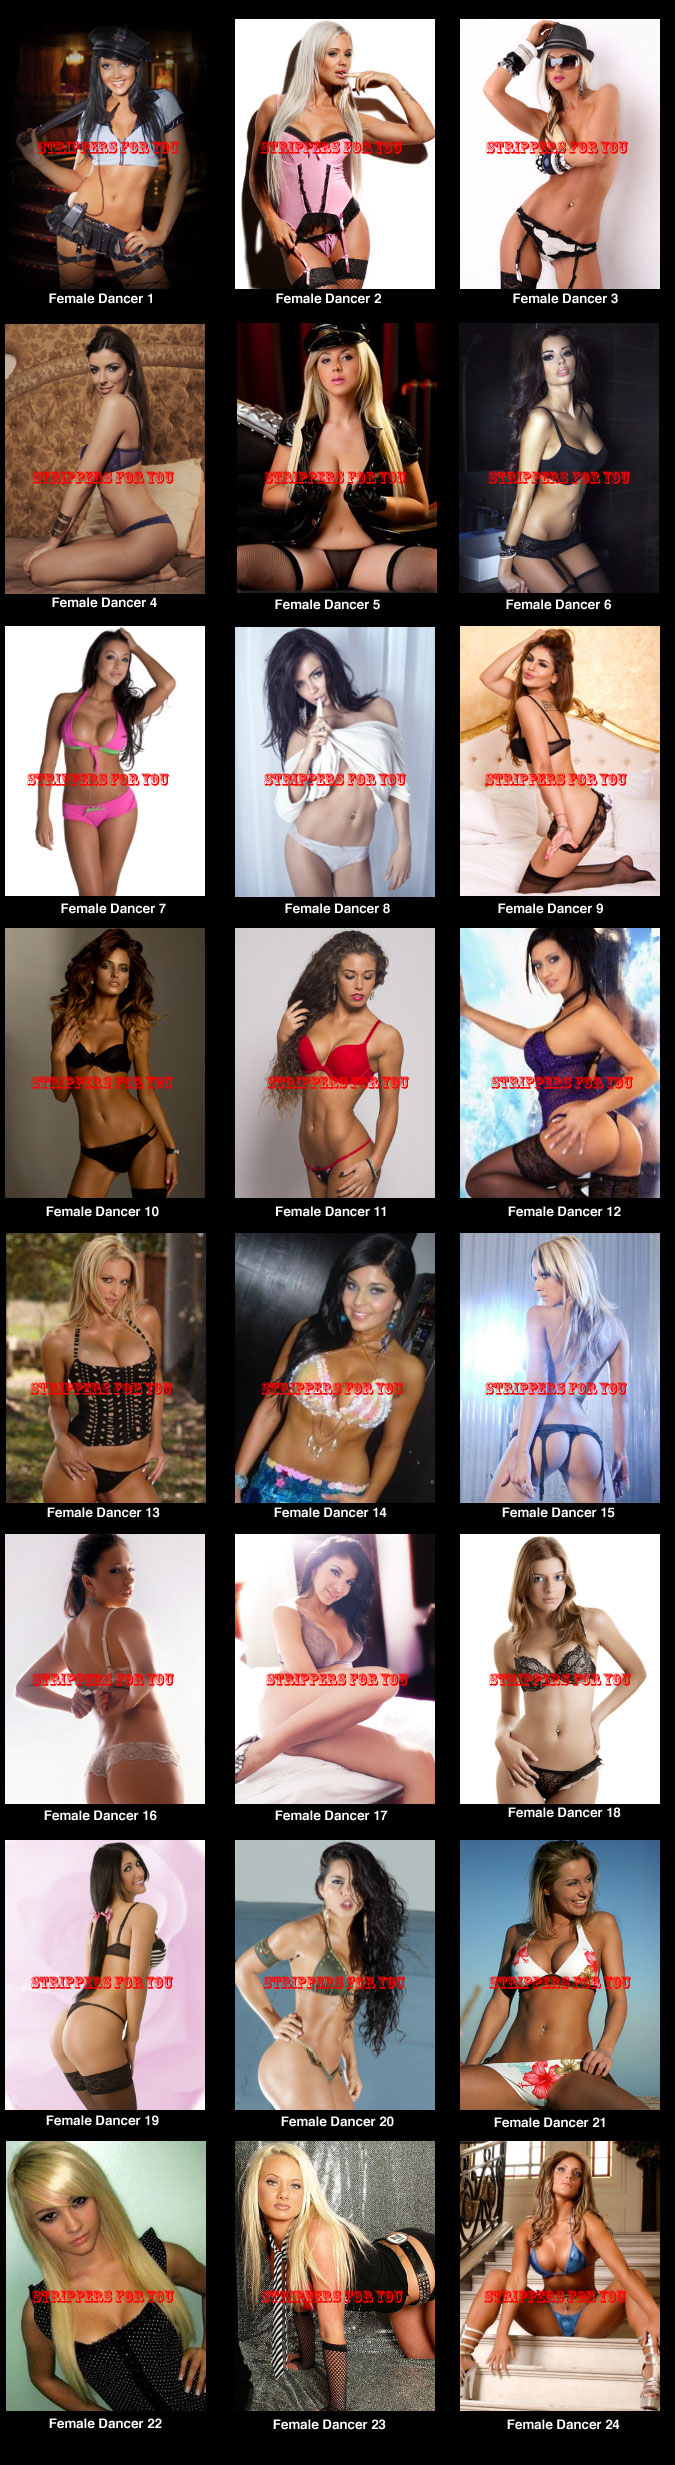 Austin female strippers